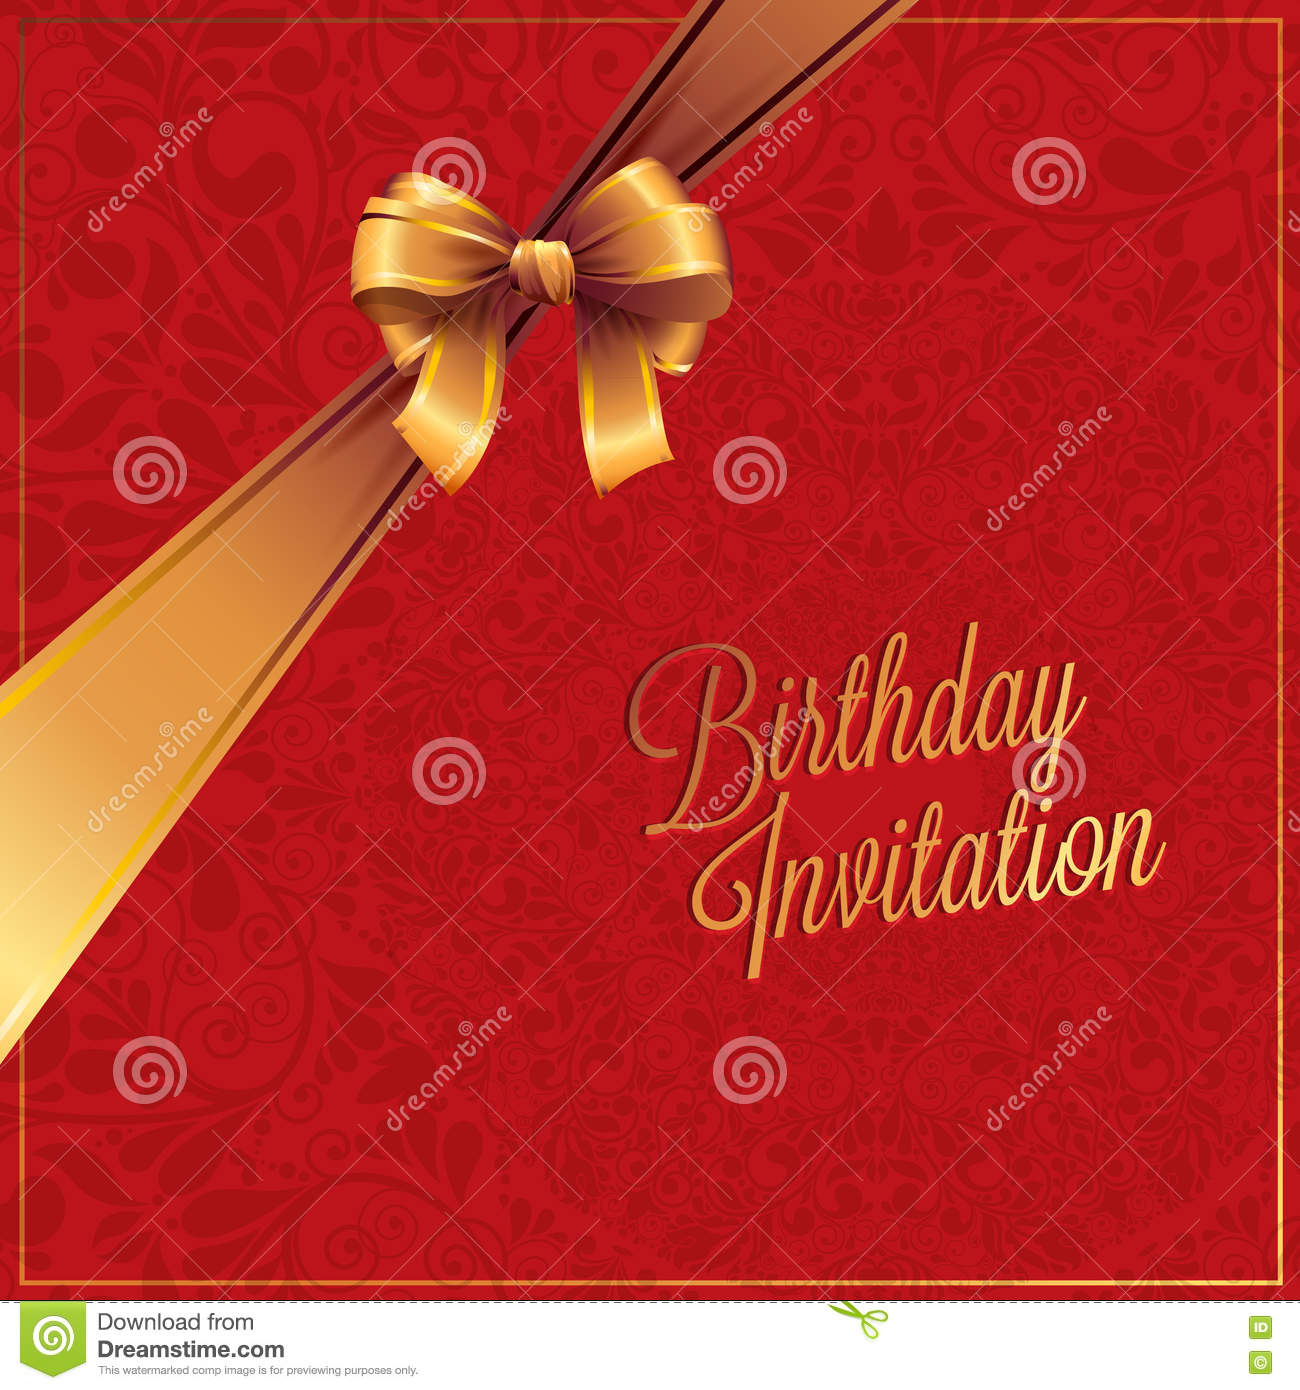 The Birthday Card And Greeting With Red Background Design Stock Vector Illustration Of Holiday Greeting 69550589